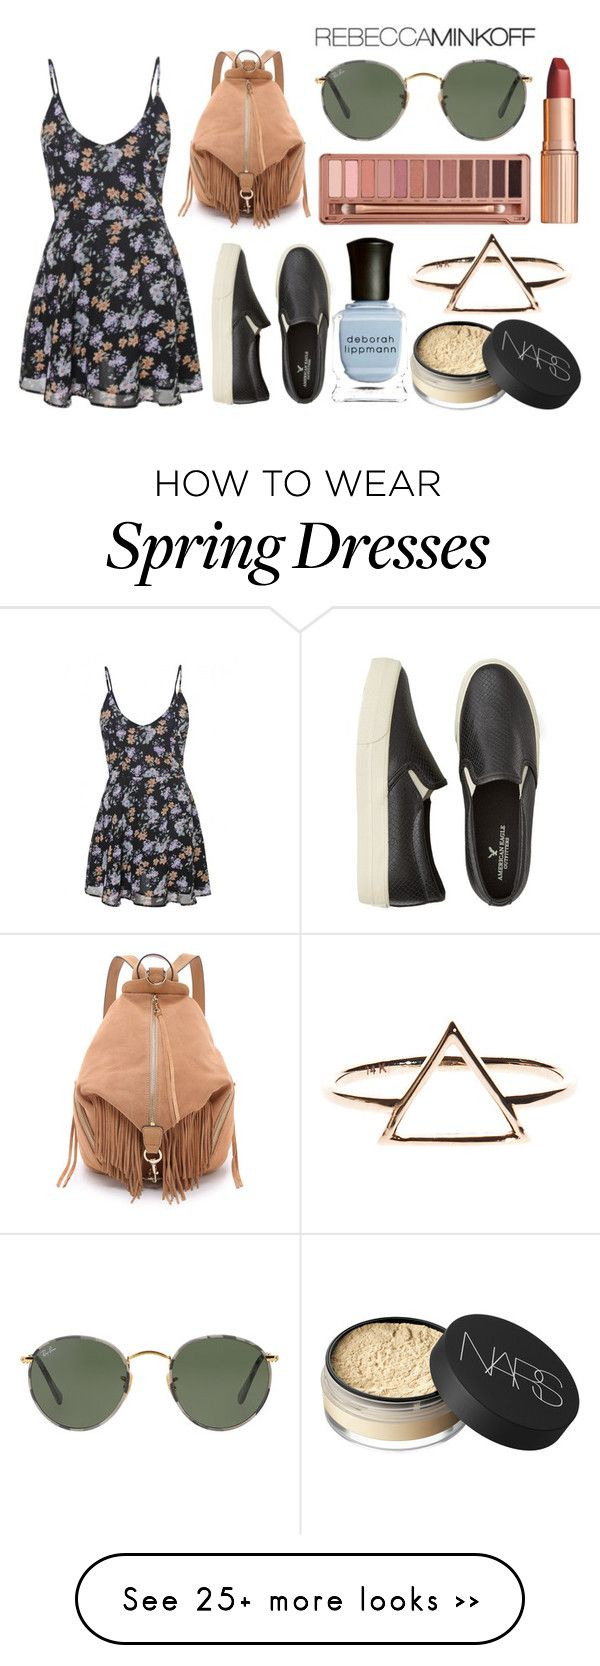 """Style Rebecca Minkoff's Spring 2016 Collection Now"" by fabubilous on Polyvore featuring American Eagle Outfitters, Deborah Lippmann, NARS Cosmetics, Ray-Ban, Charlotte Tilbury, Urban Decay and Rebecca Minkoff"